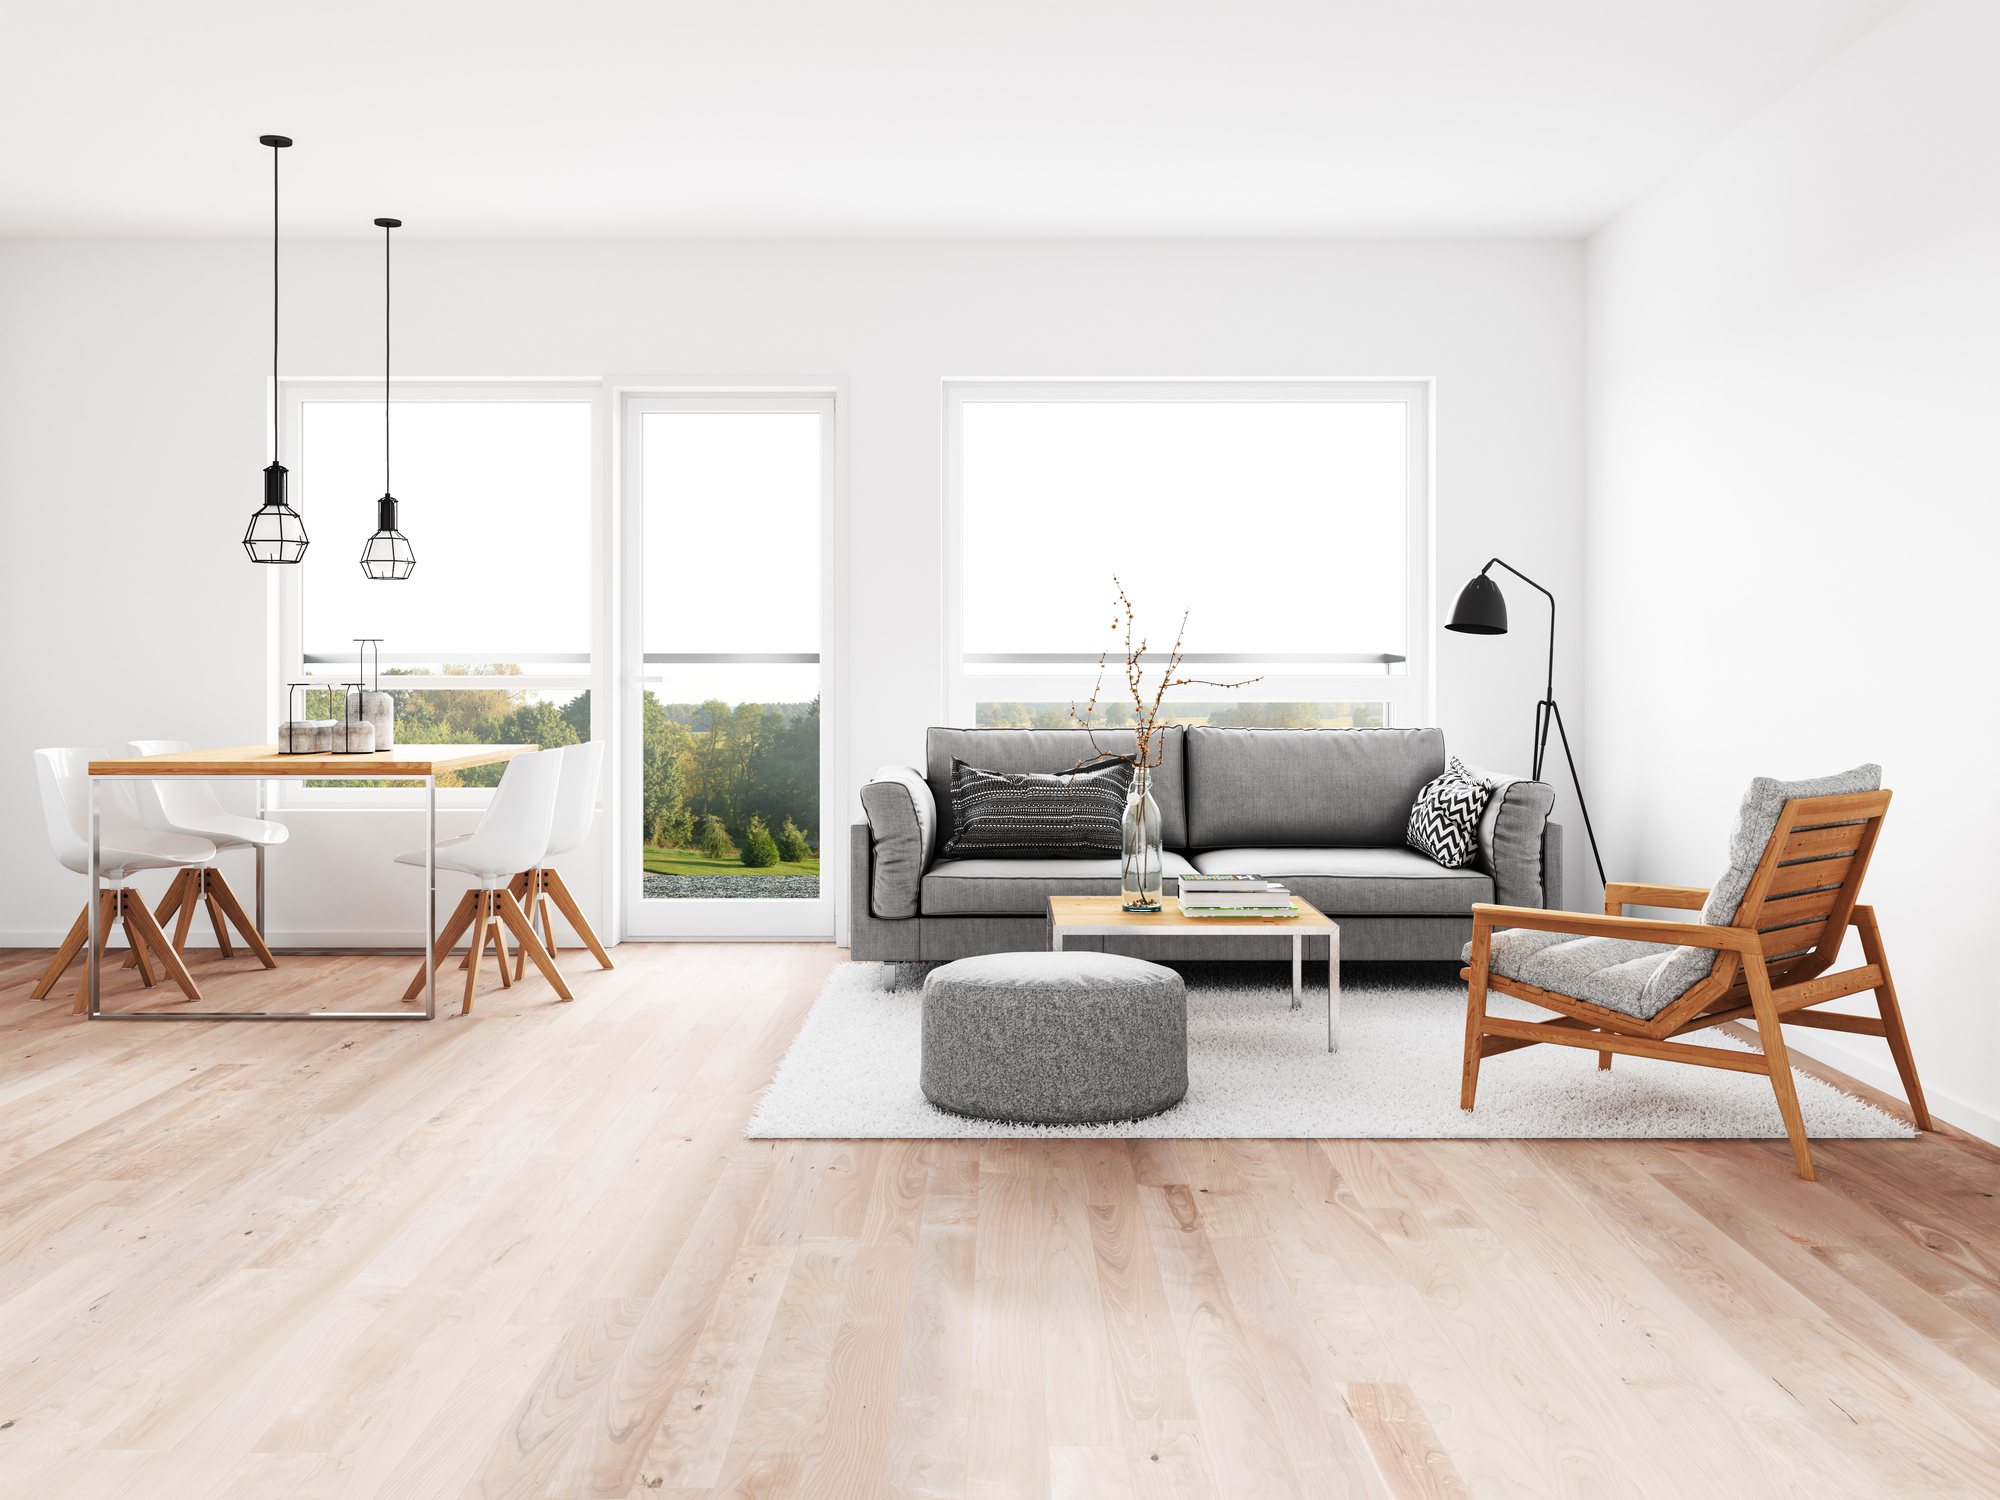 Tips for Living a Minimalist Lifestyle